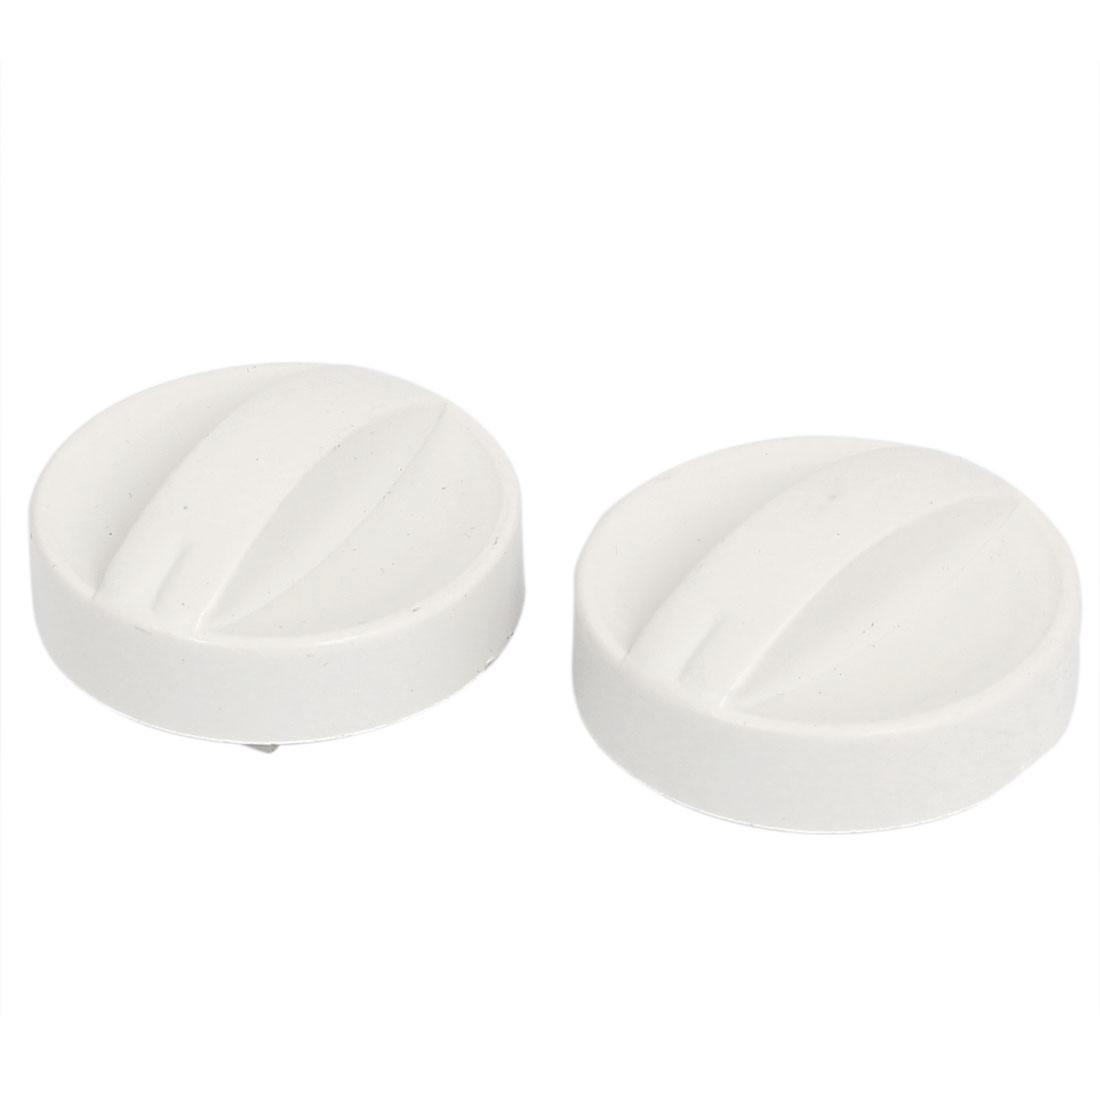 6mm Hole Dia Plastic Washing Machine Dryer Washer Timer Control Knob White 2Pcs